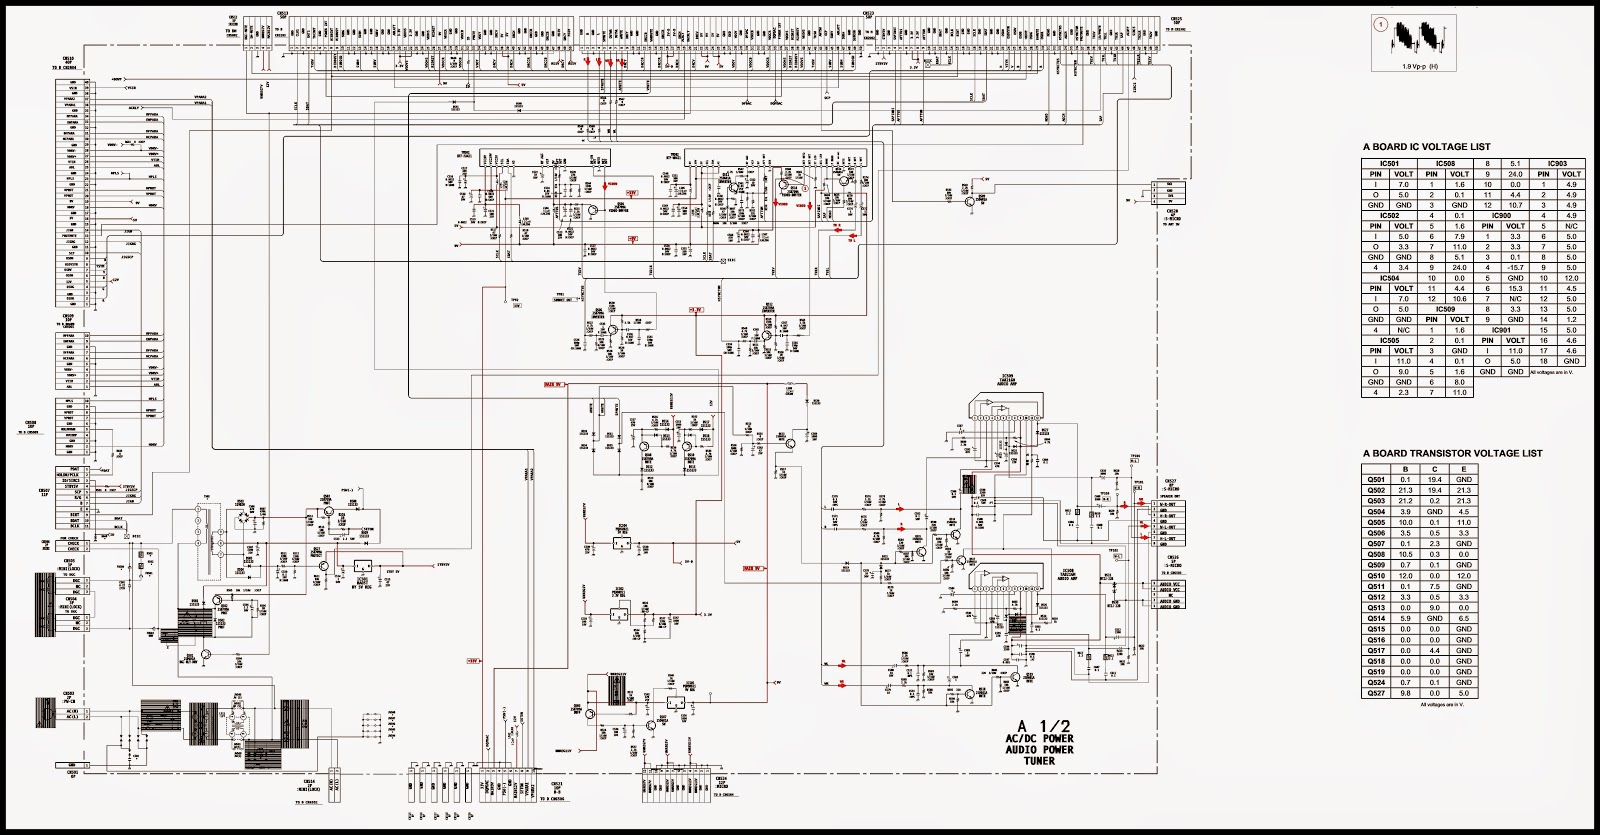 4 pin monitor power supply wiring diagram   41 wiring